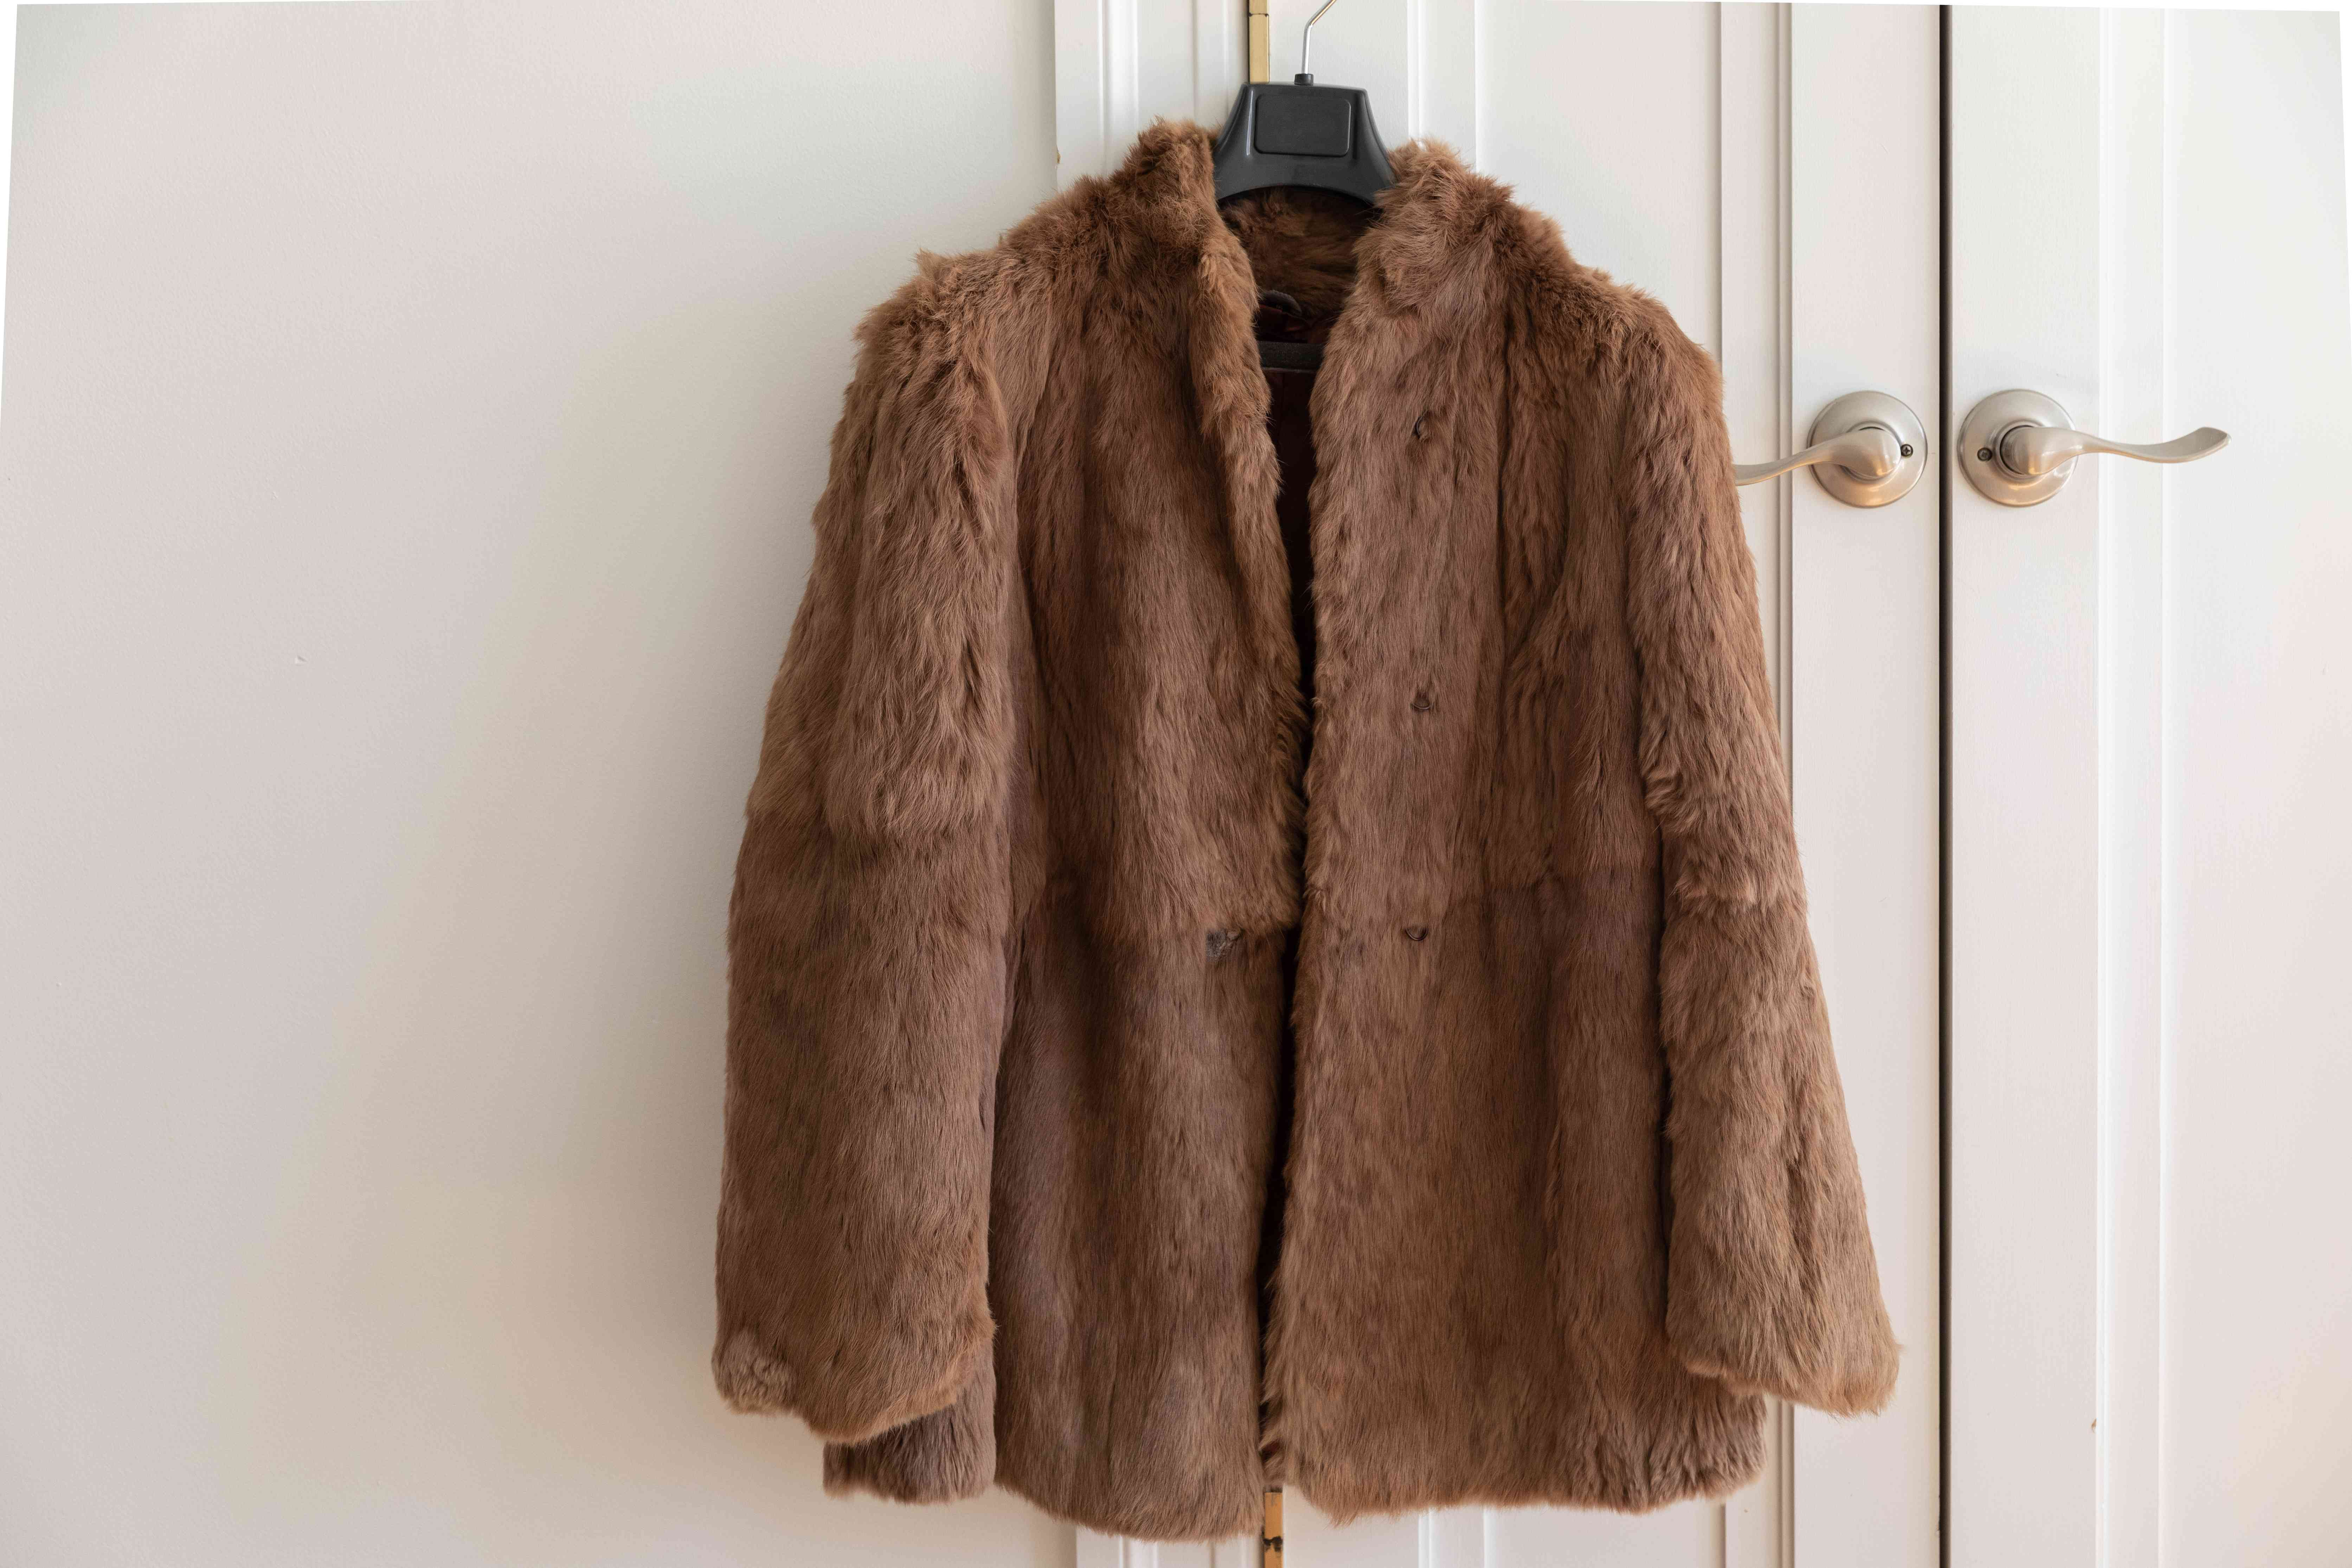 A brown fur coat hanging up to dry